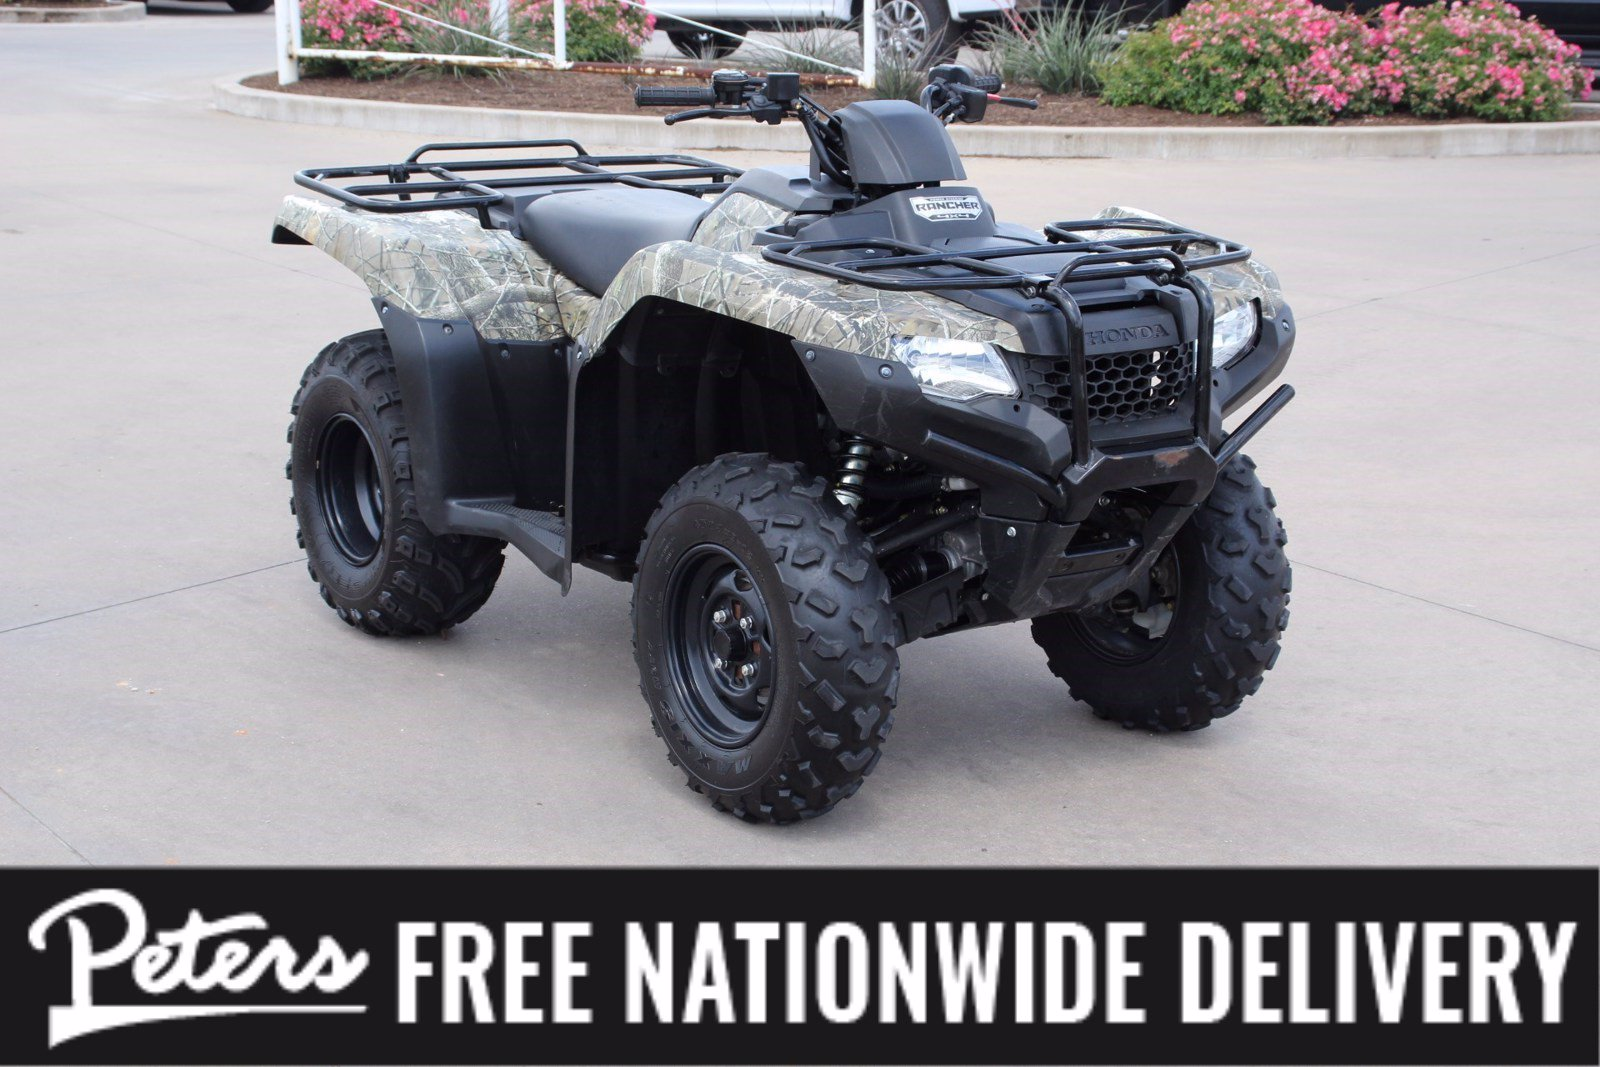 Pre-Owned 2018 Honda Fourtrax Rancher TRX 420 FA2